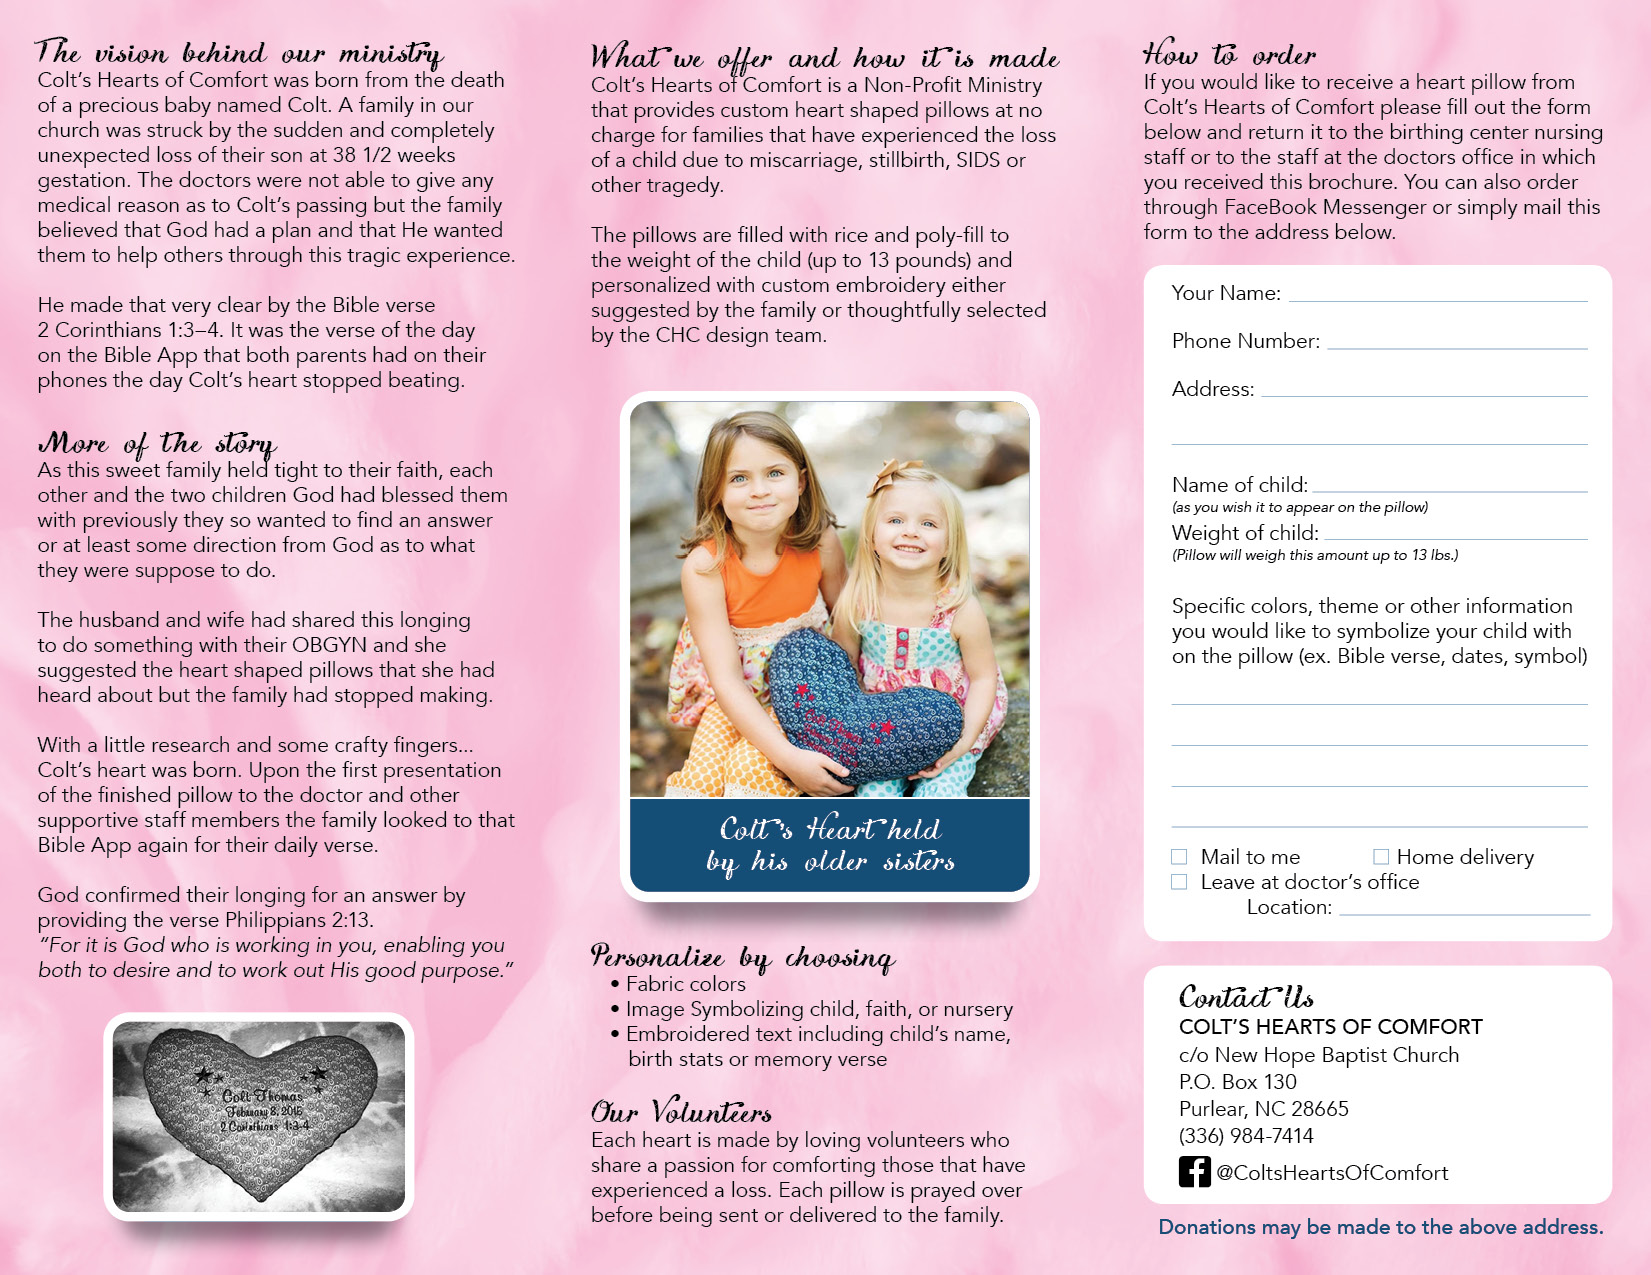 colts heart tri-fold brochure design by graphic artists pixels on paper